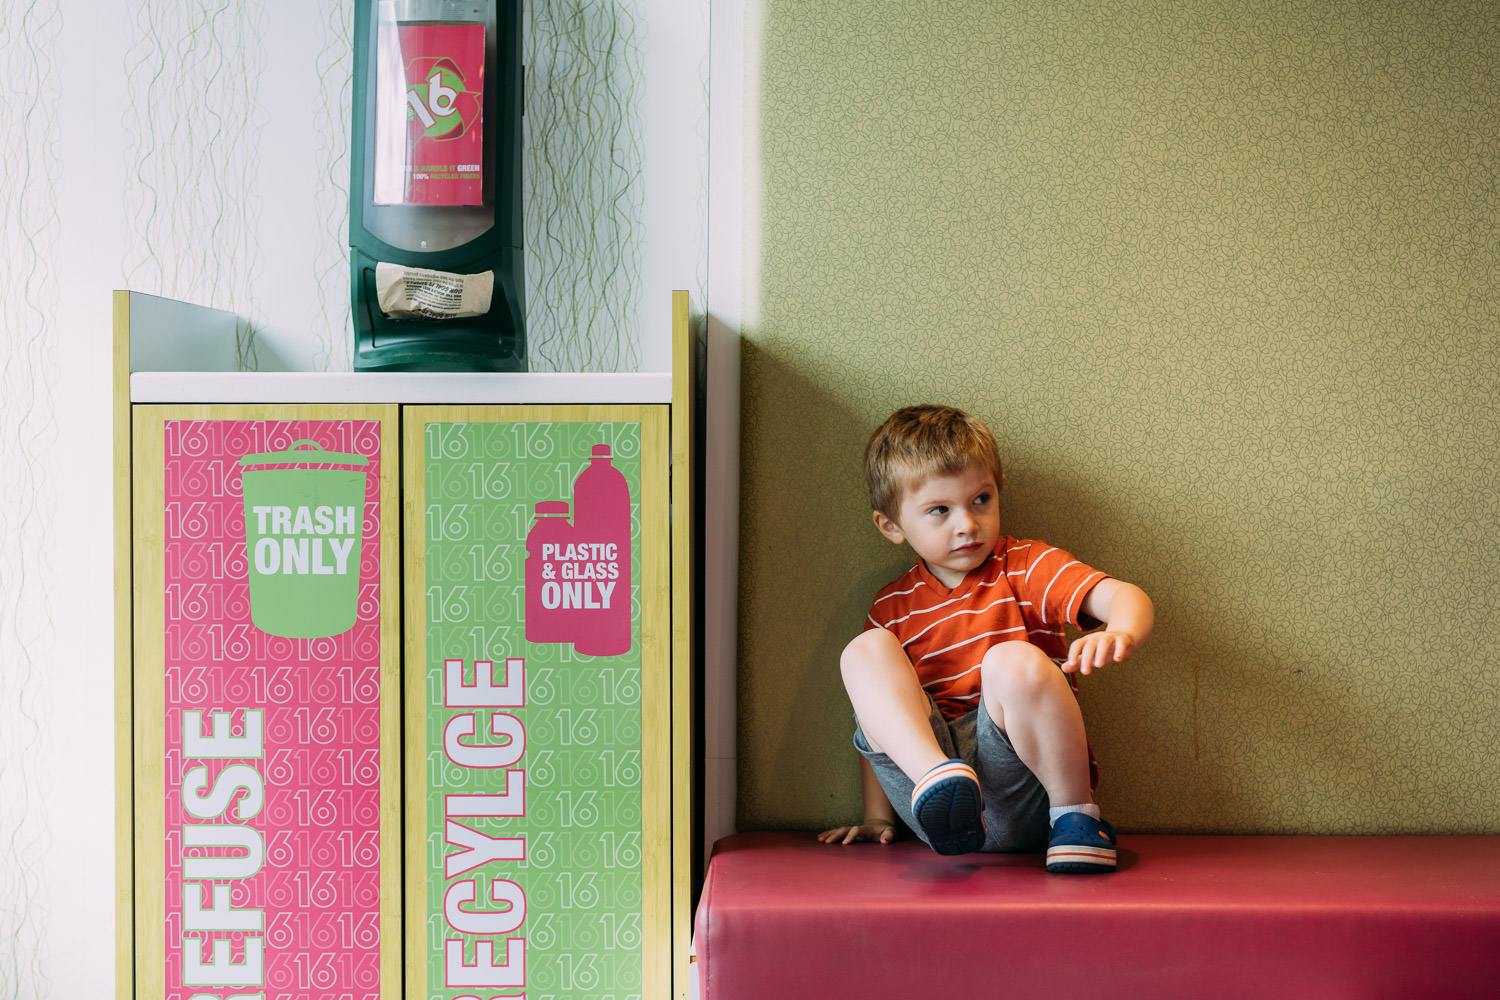 A little boy sits on a bench at 16 Handles.